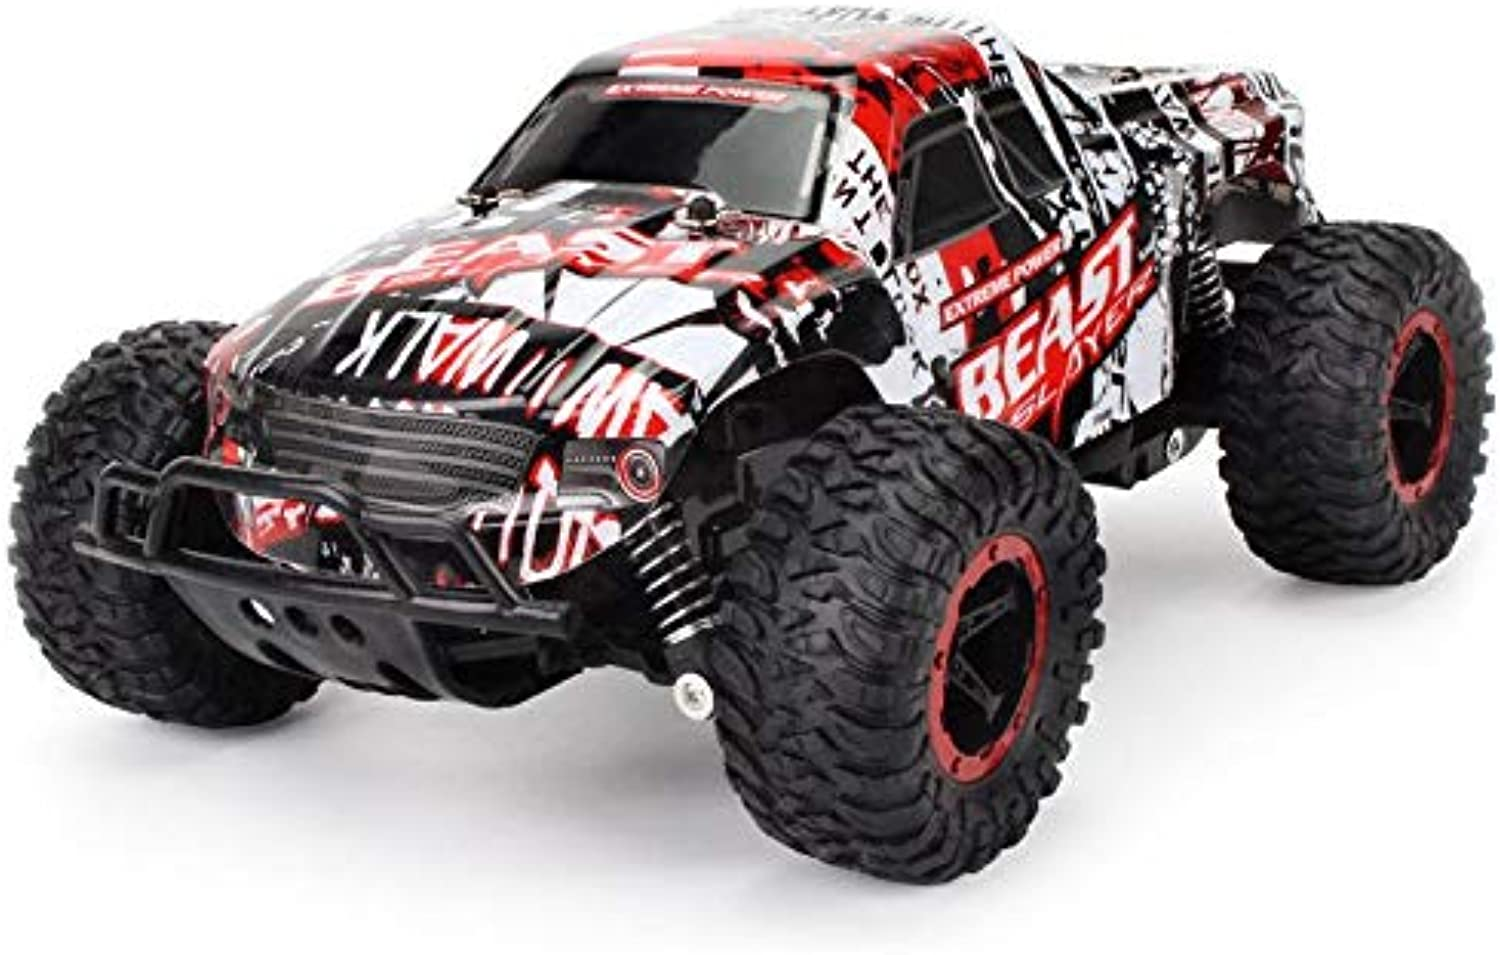 FidgetGear Cheetah King Remote Control Toy RC Rally Truck Car 2.4 GHz 1 20 Scale Size